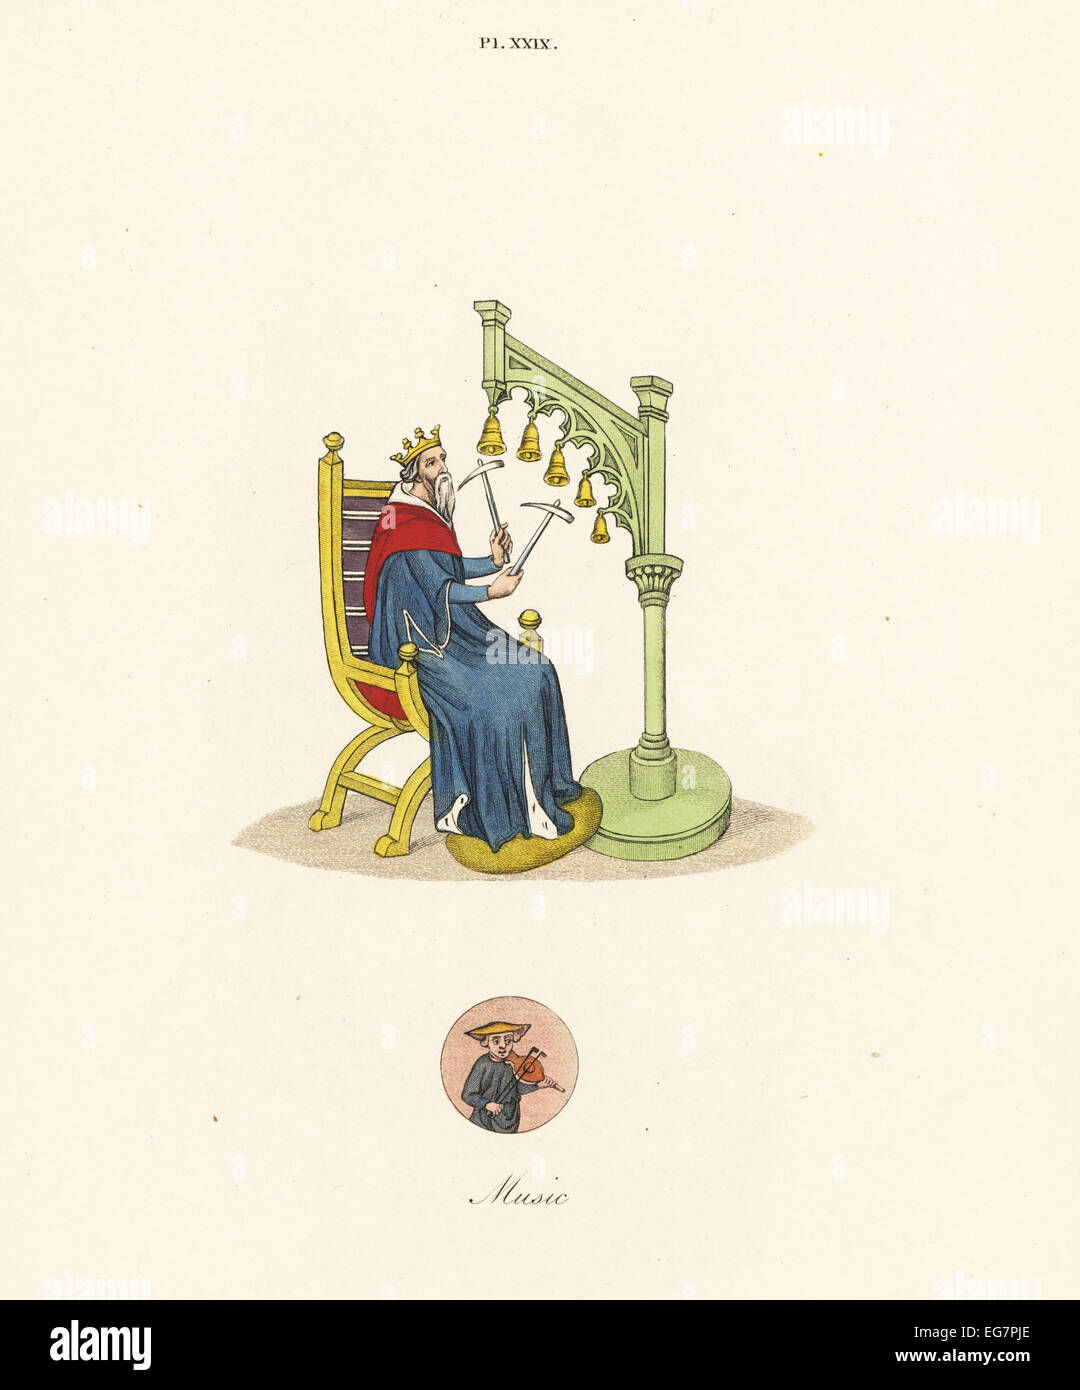 King David playing handbells with hammers from a 14th century manuscript of his psalms, with a vignette of a comedian Stock Photo